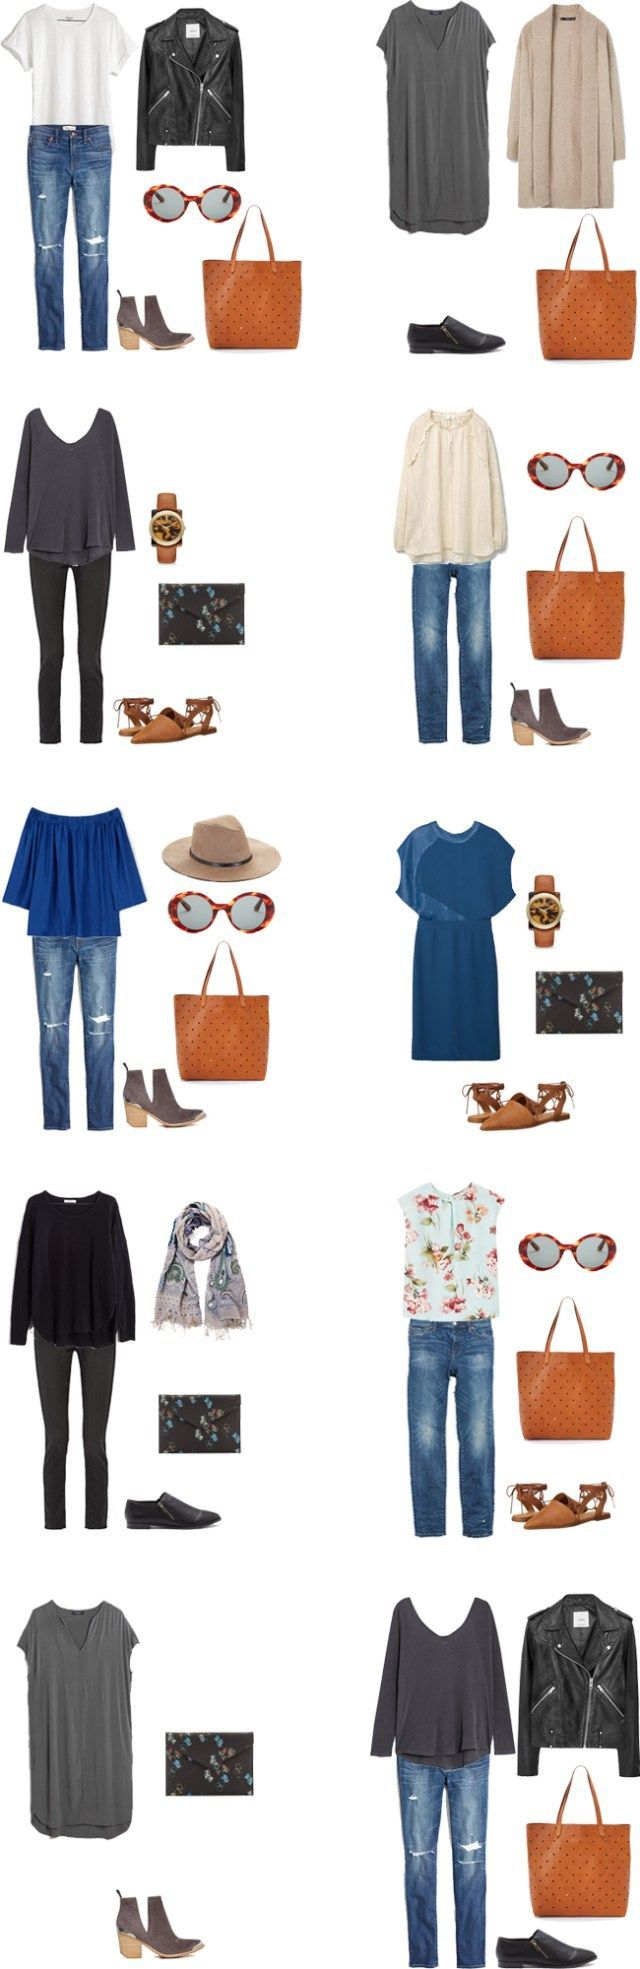 What to Wear in London England Outfit Options 1-10 #travellight #packinglight #travel #traveltips // Fashion Style Ideas Tips